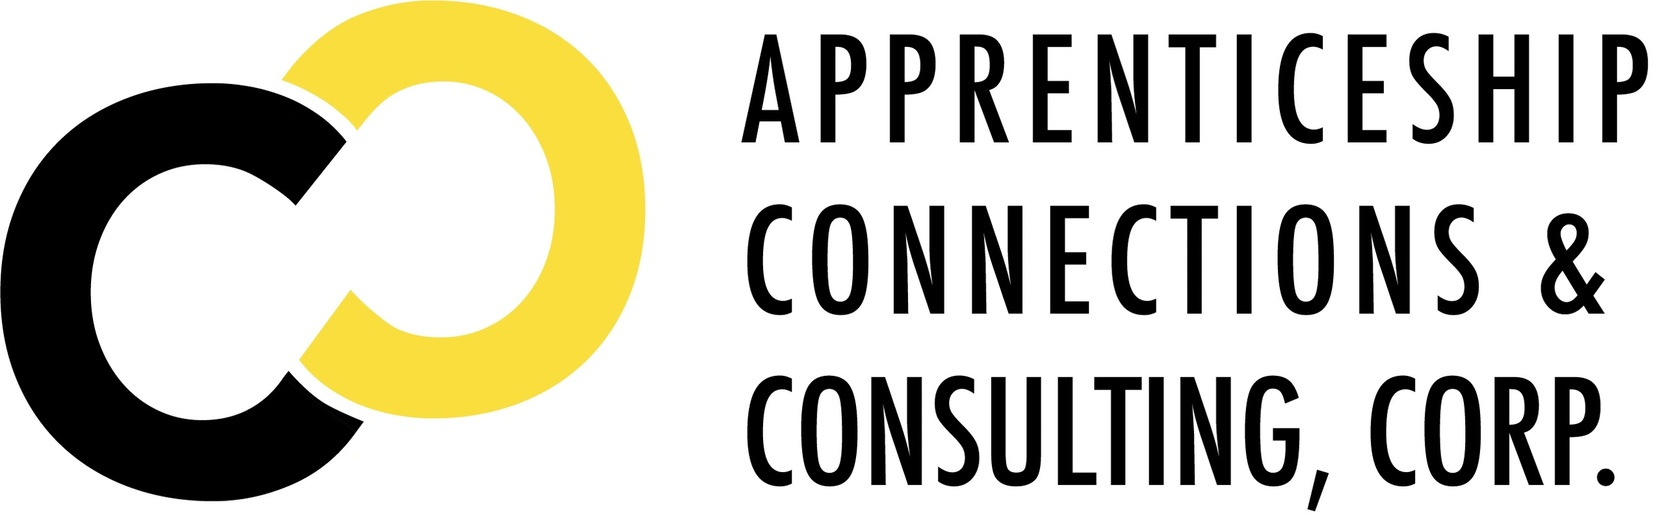 Apprenticeship Connections & Consulting, Corp.